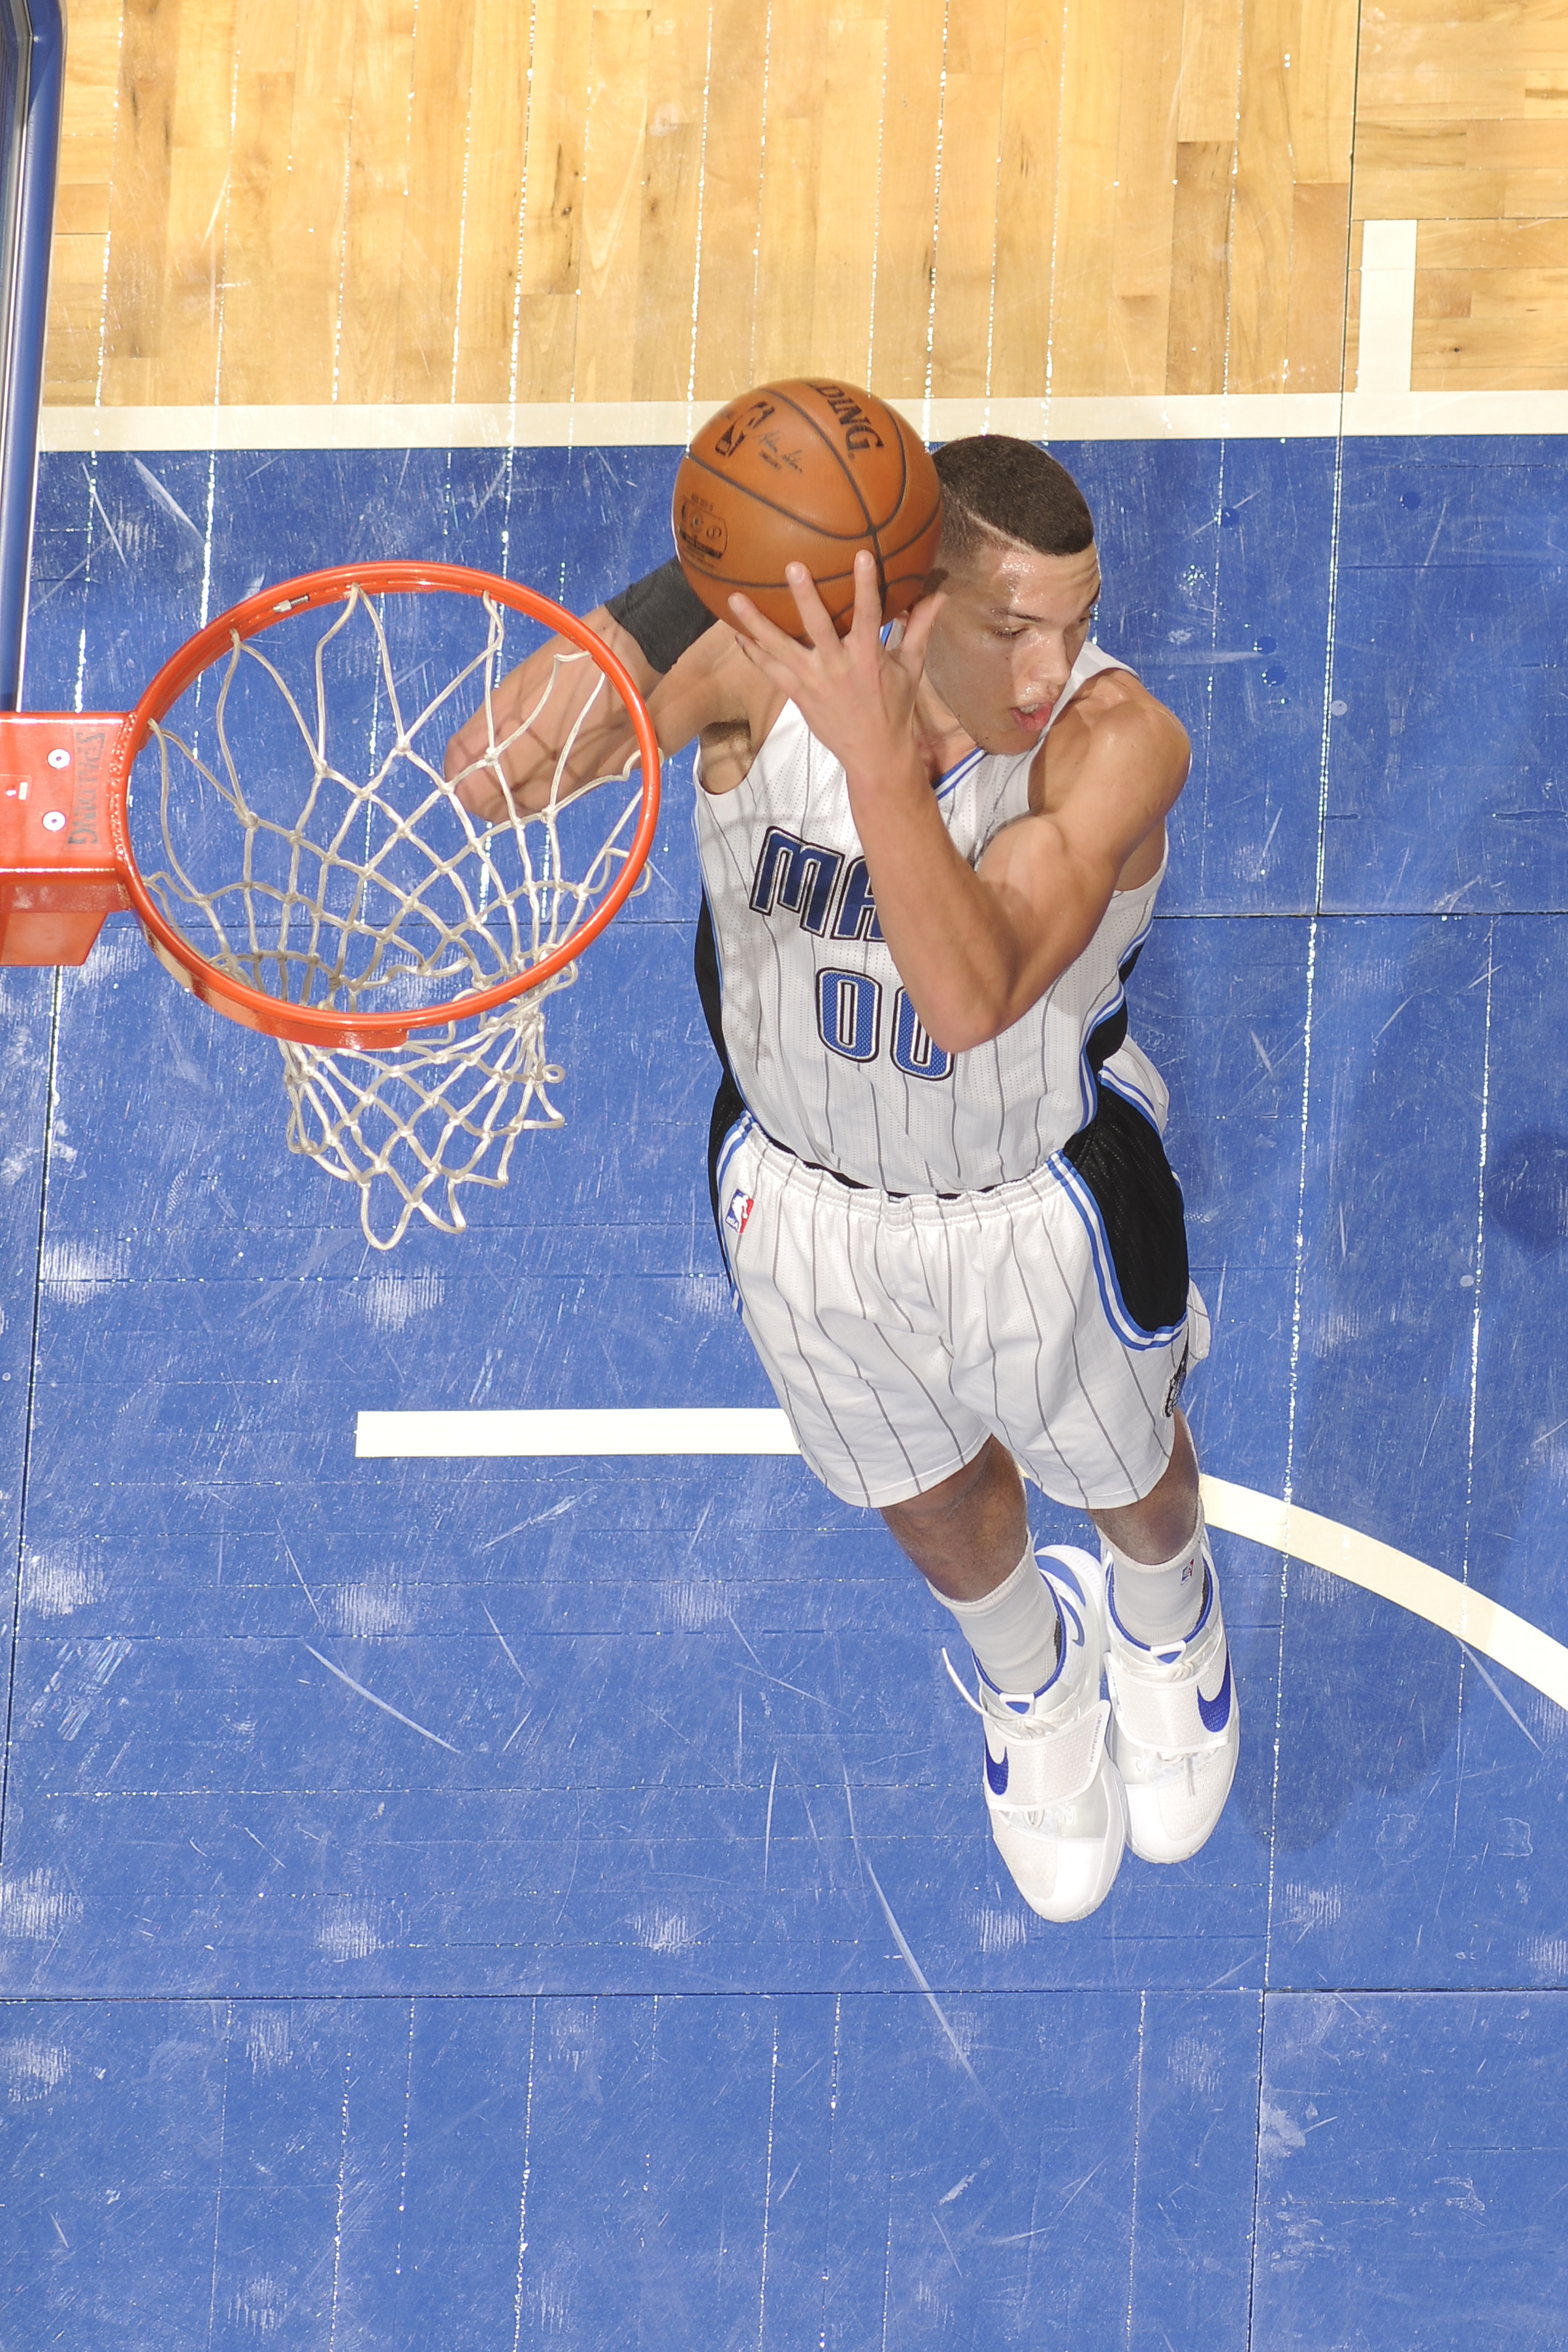 ORLANDO, FL - FEBRUARY 21: Aaron Gordon #00 of the Orlando Magic grabs the rebound against the Indiana Pacers  on February 21, 2016 at the Amway Center in Orlando, Florida. (Photo by Fernando Medina/NBAE via Getty Images)